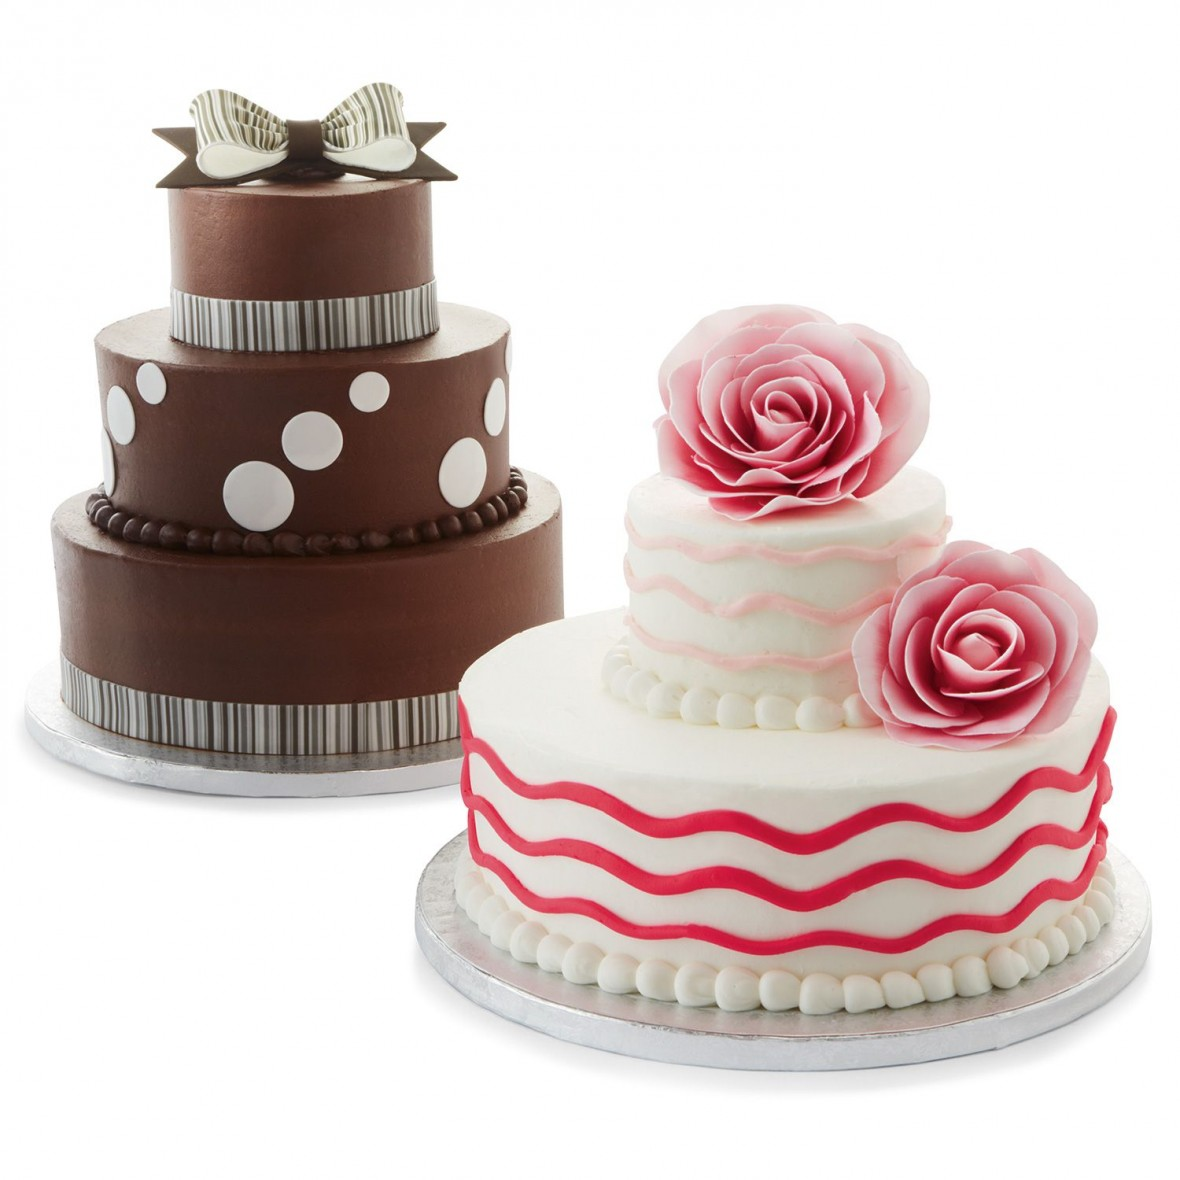 wedding and groom's cakes from Sam's Club